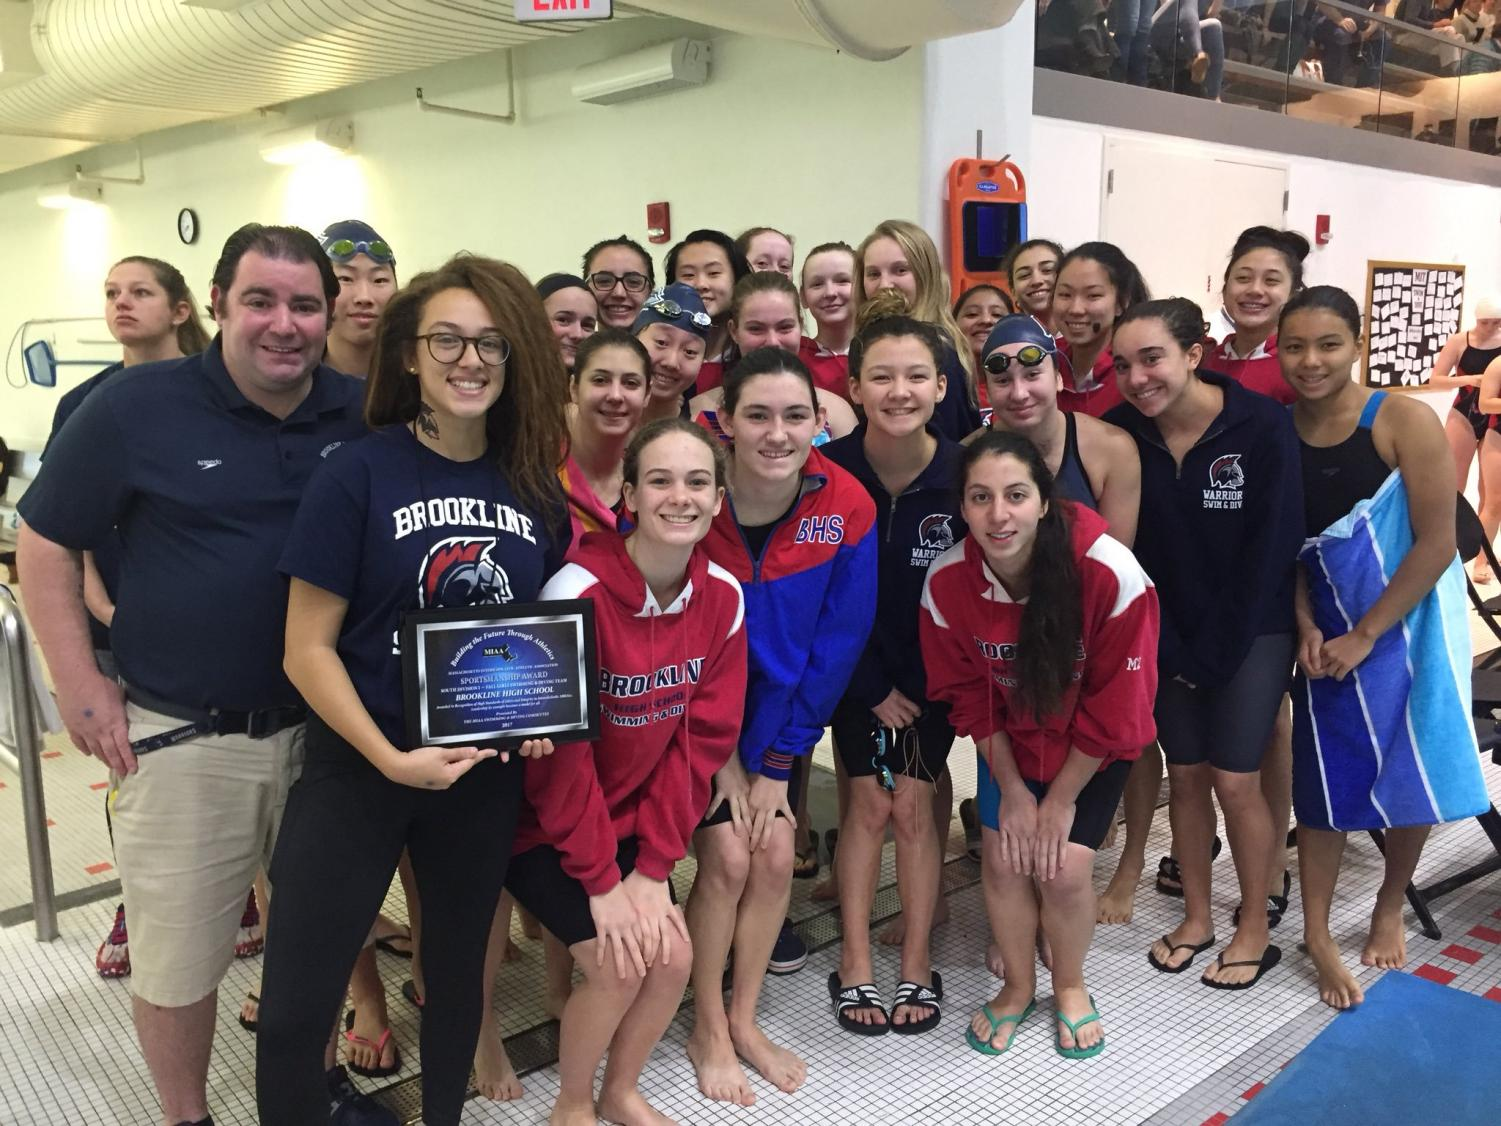 The girls swim and dive team poses after receiving the sportsmanship award. Captain Ali Keenan said they won the award because of the way they handled their losses.